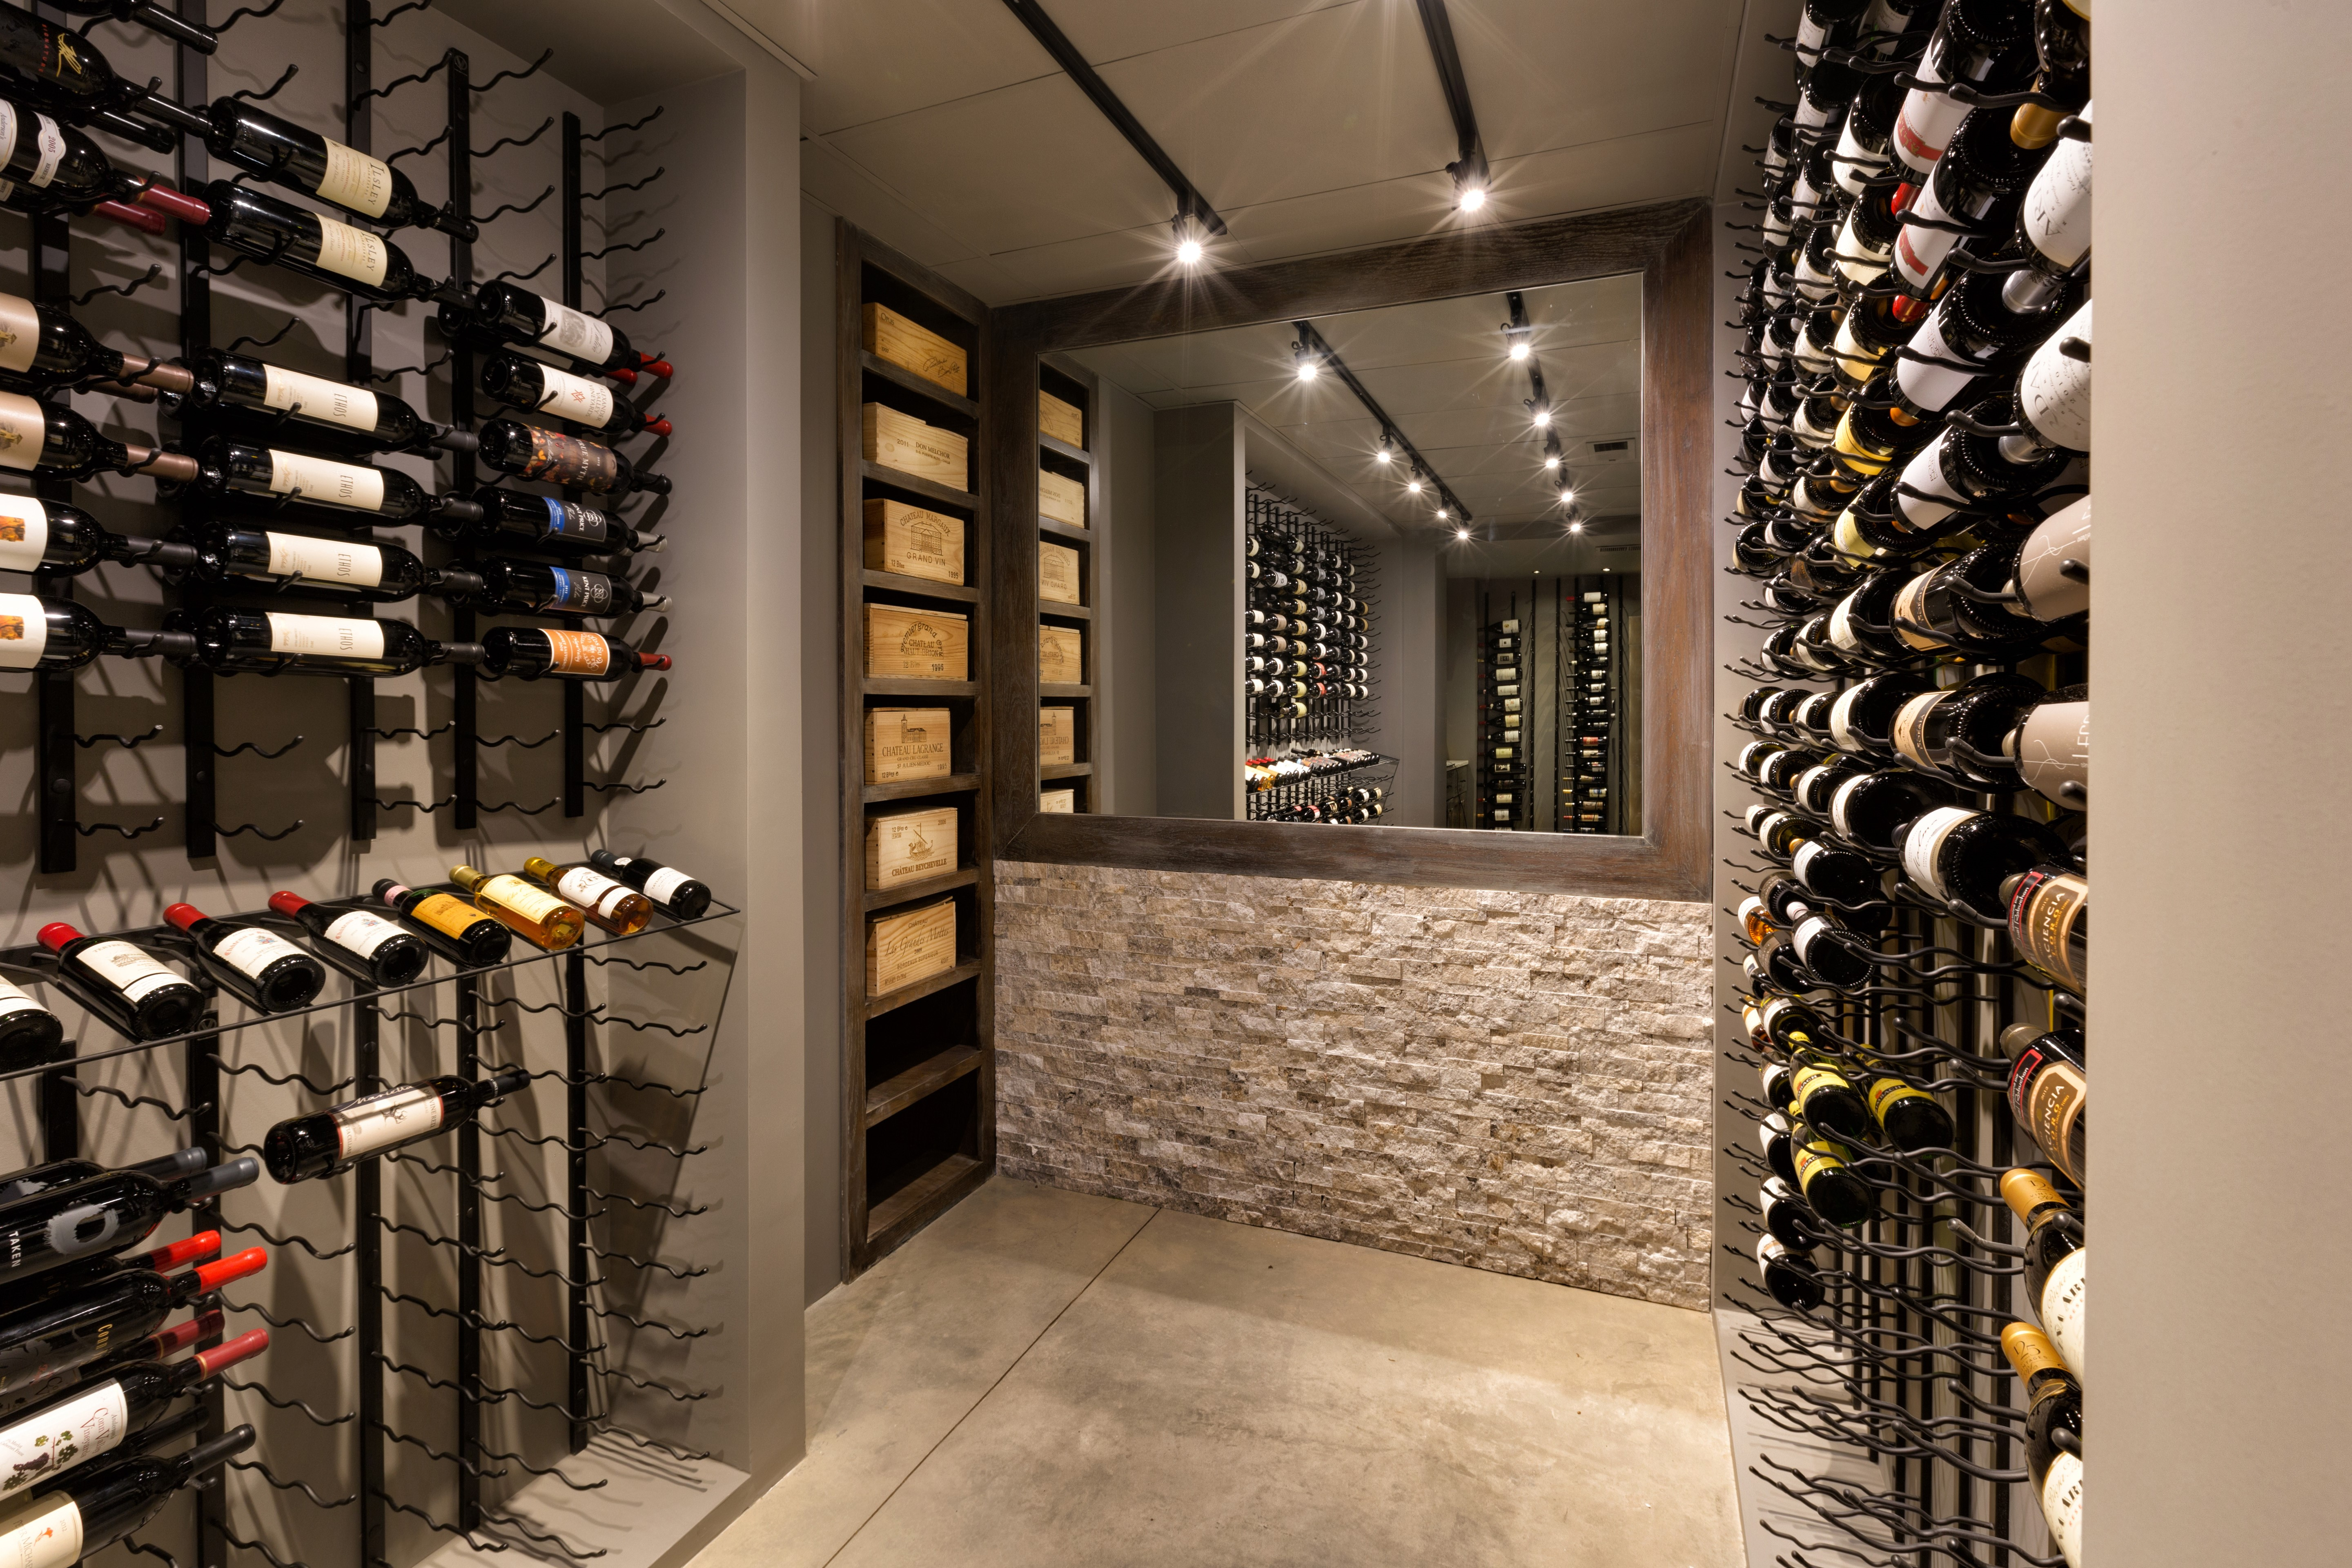 Before And After Wine Cellar Transformation: A Design Connection, Inc.  Featured Project